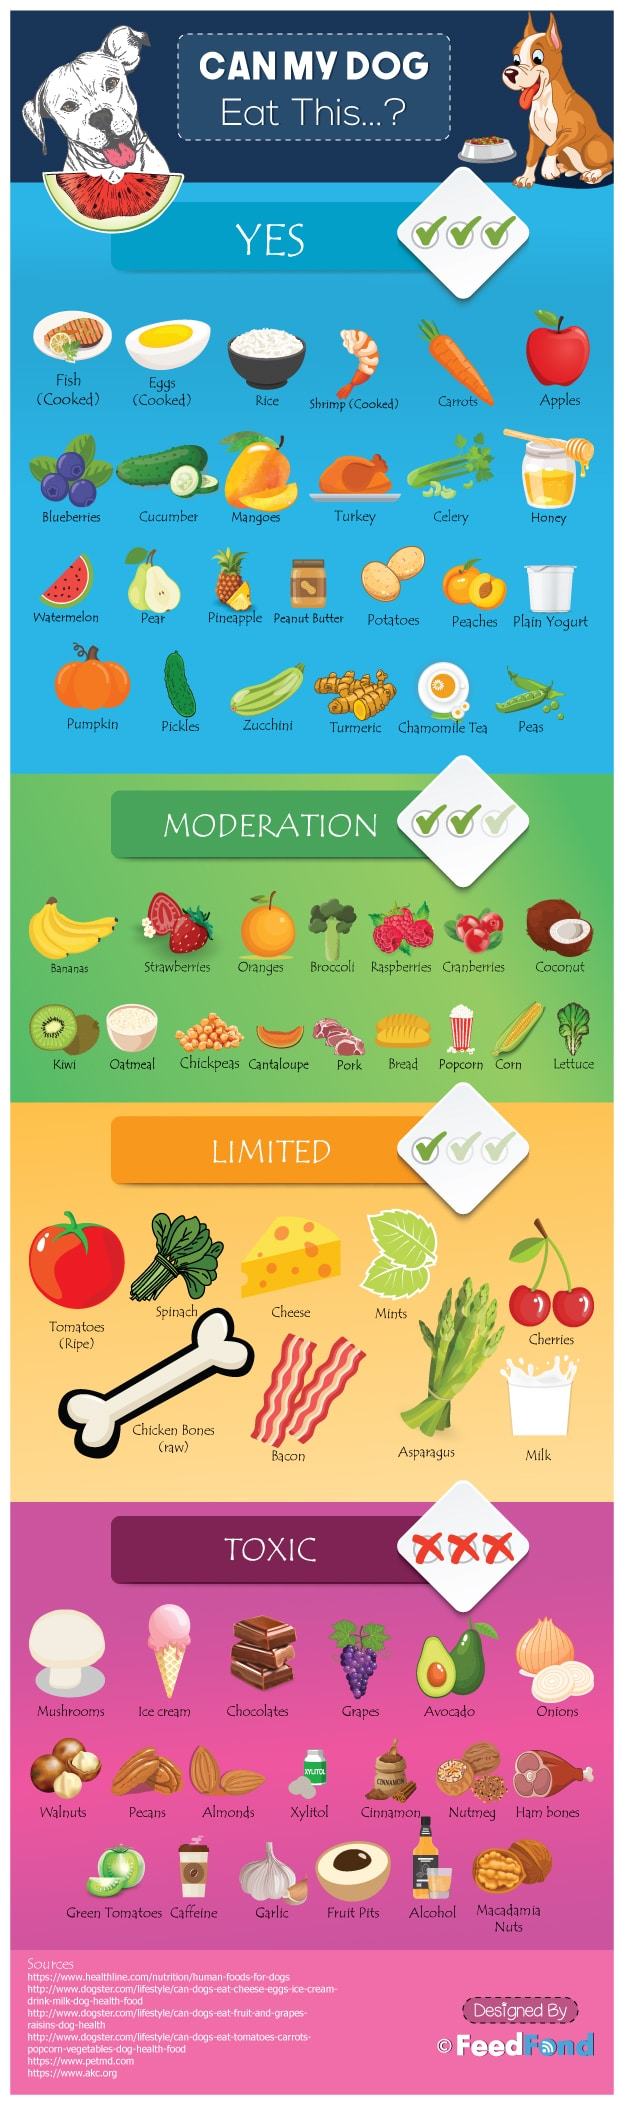 Fruits and Vegetables that Can Be Shared with Your Dog - Infographic